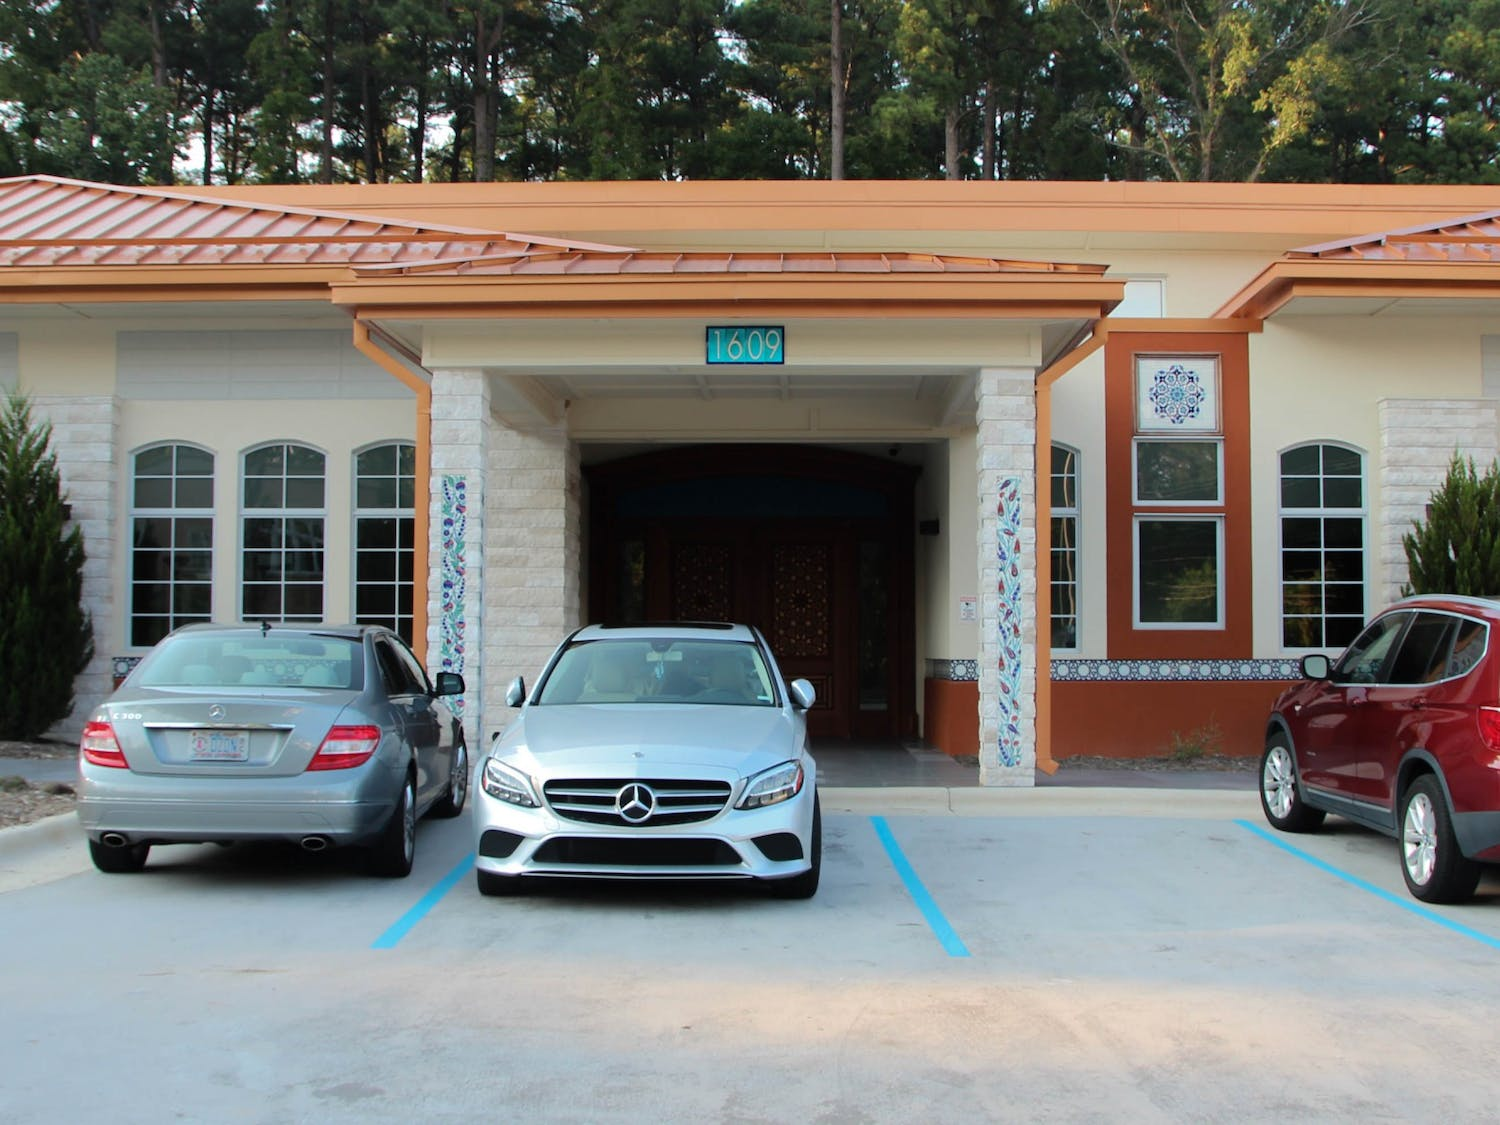 The Sancar Turkish Cultural and Community Center was photographed in Chapel Hill on Aug. 23, 2021. The center was founded by Drs. Gwen and Aziz Sancar.